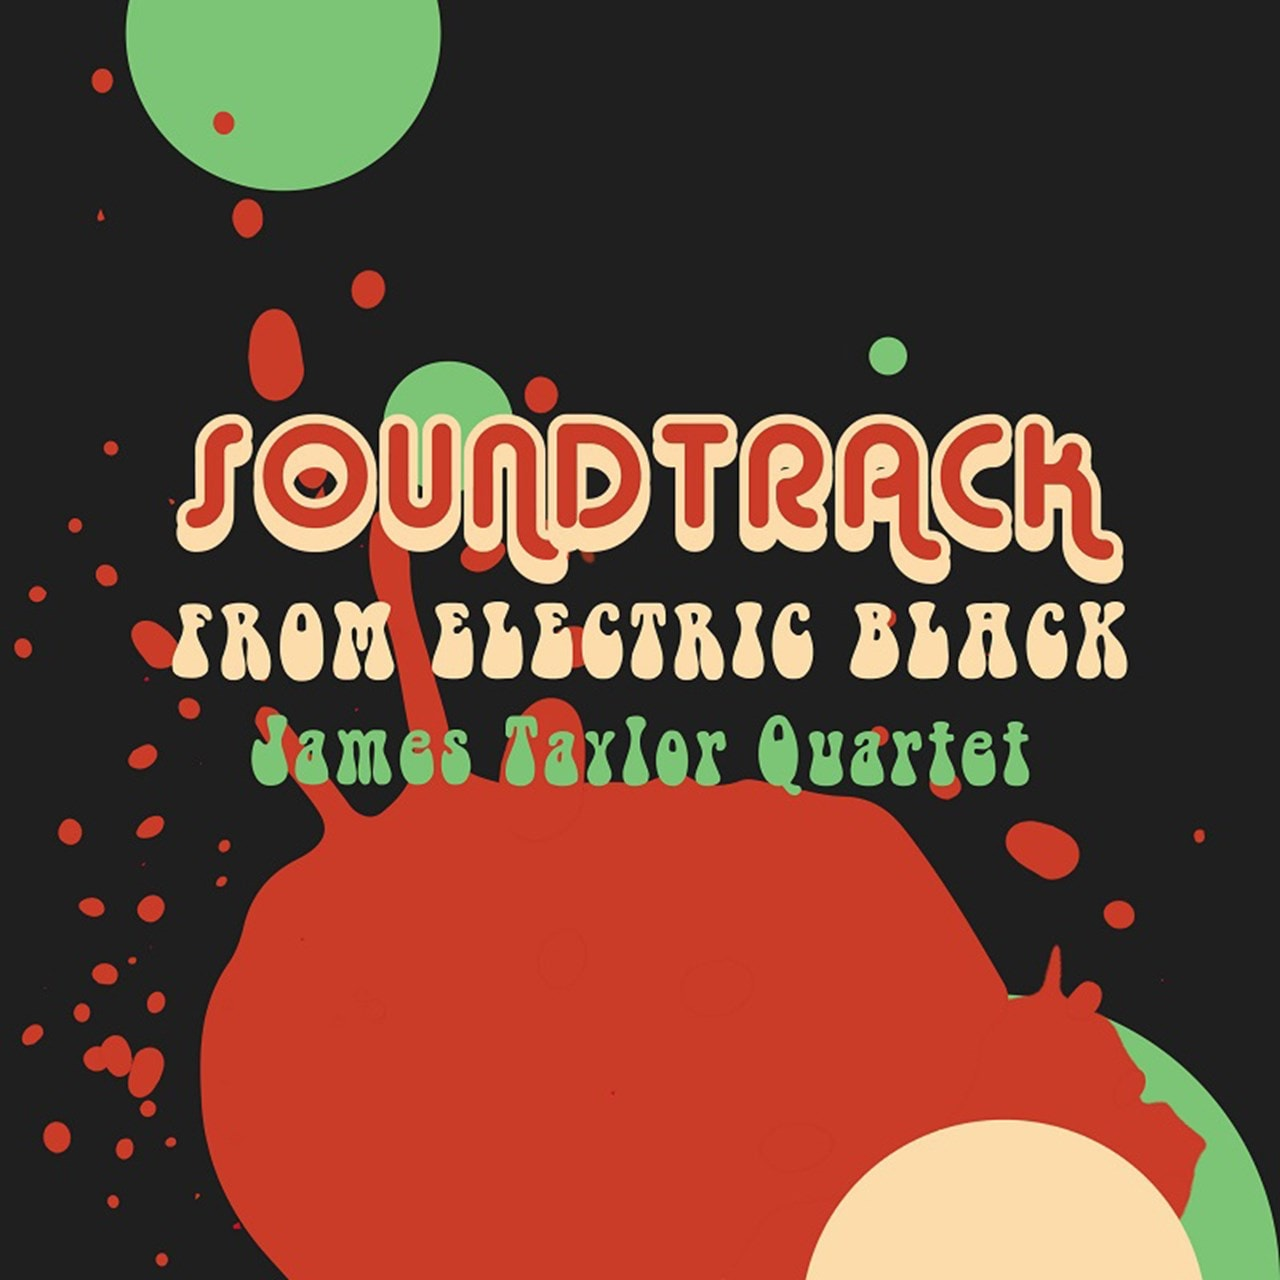 Soundtrack from Electric Black - 1